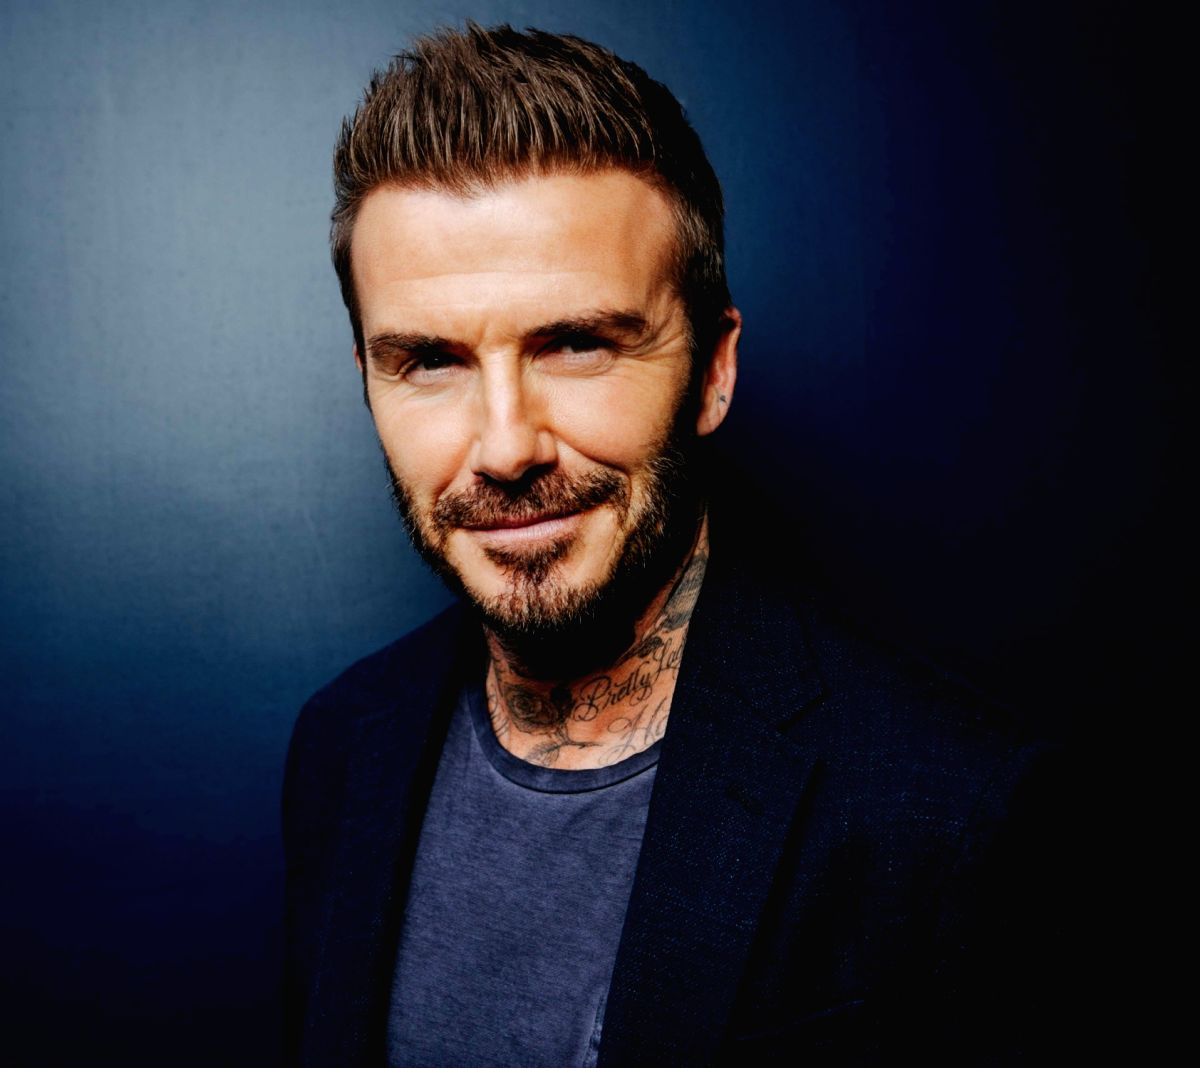 David Beckham on making healthy living way of life.